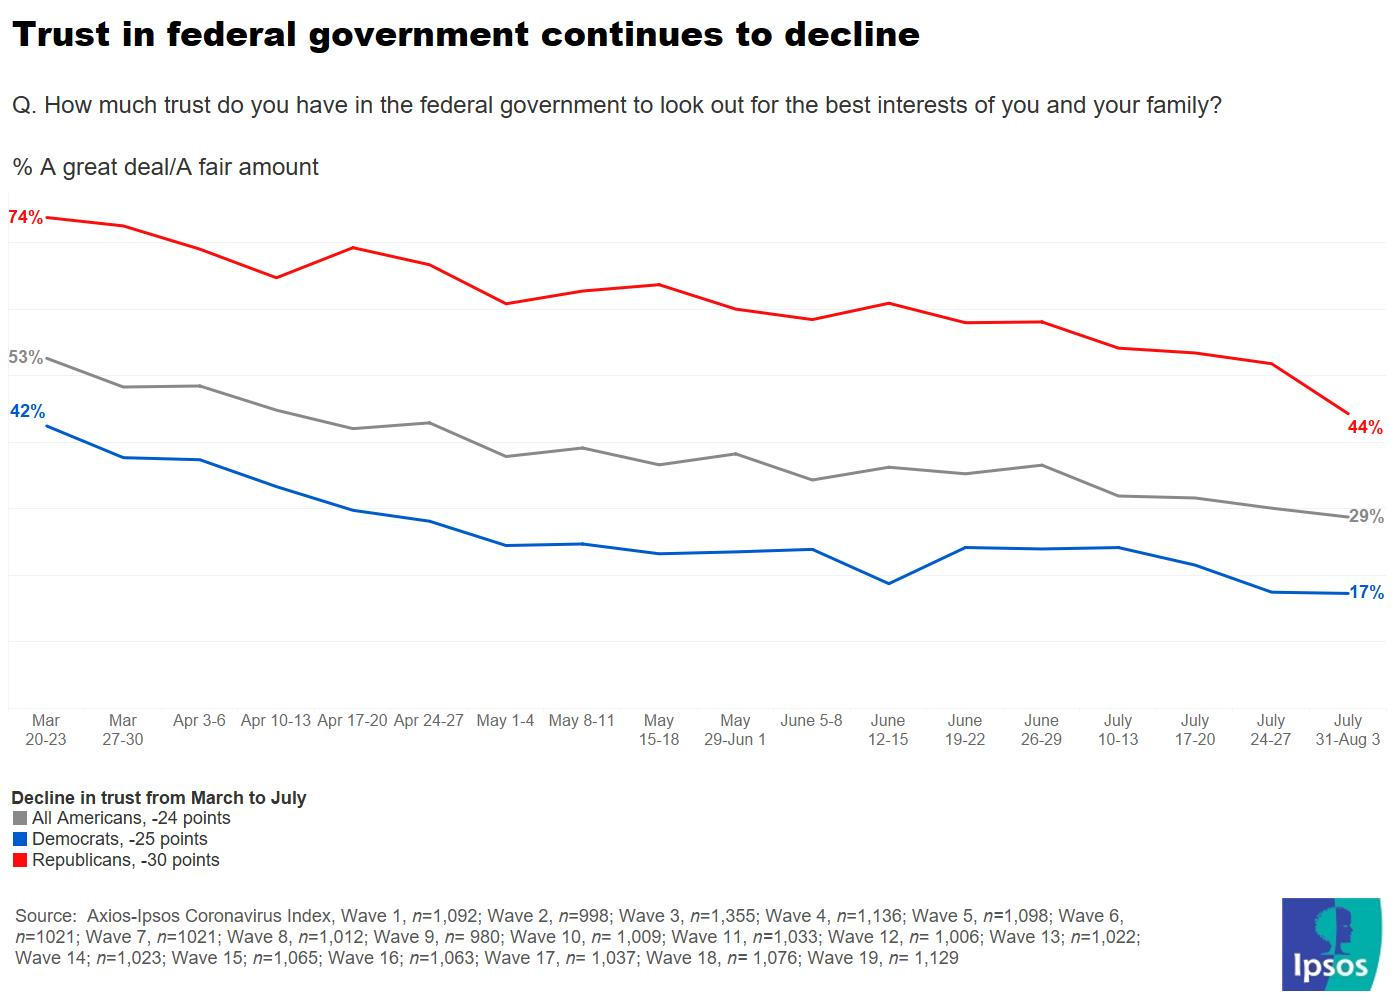 Low trust in federal government